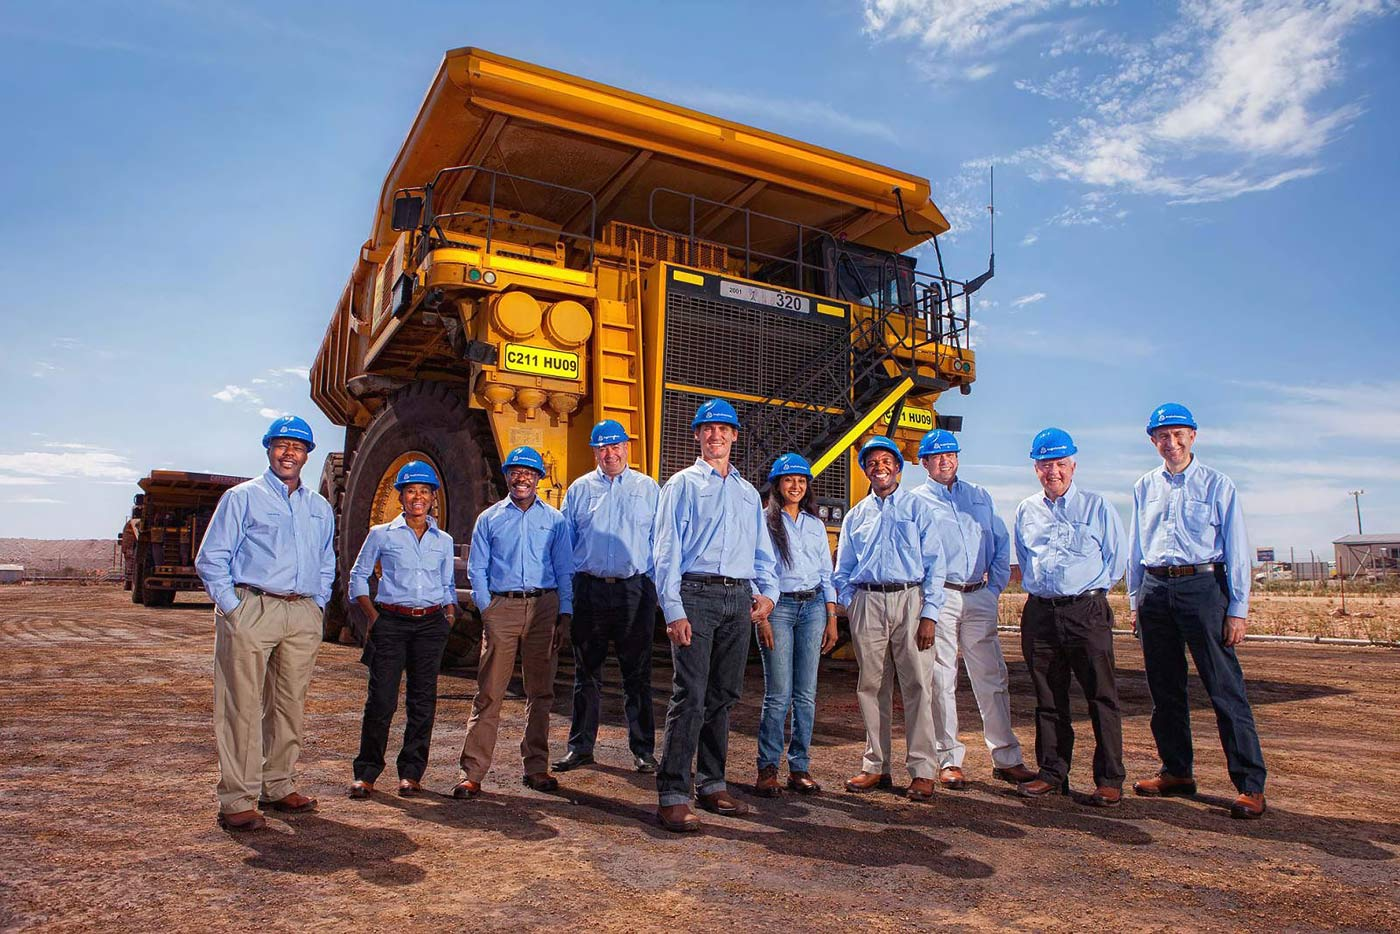 Mining group executives with haul truck - corporate and mining photography portfolio